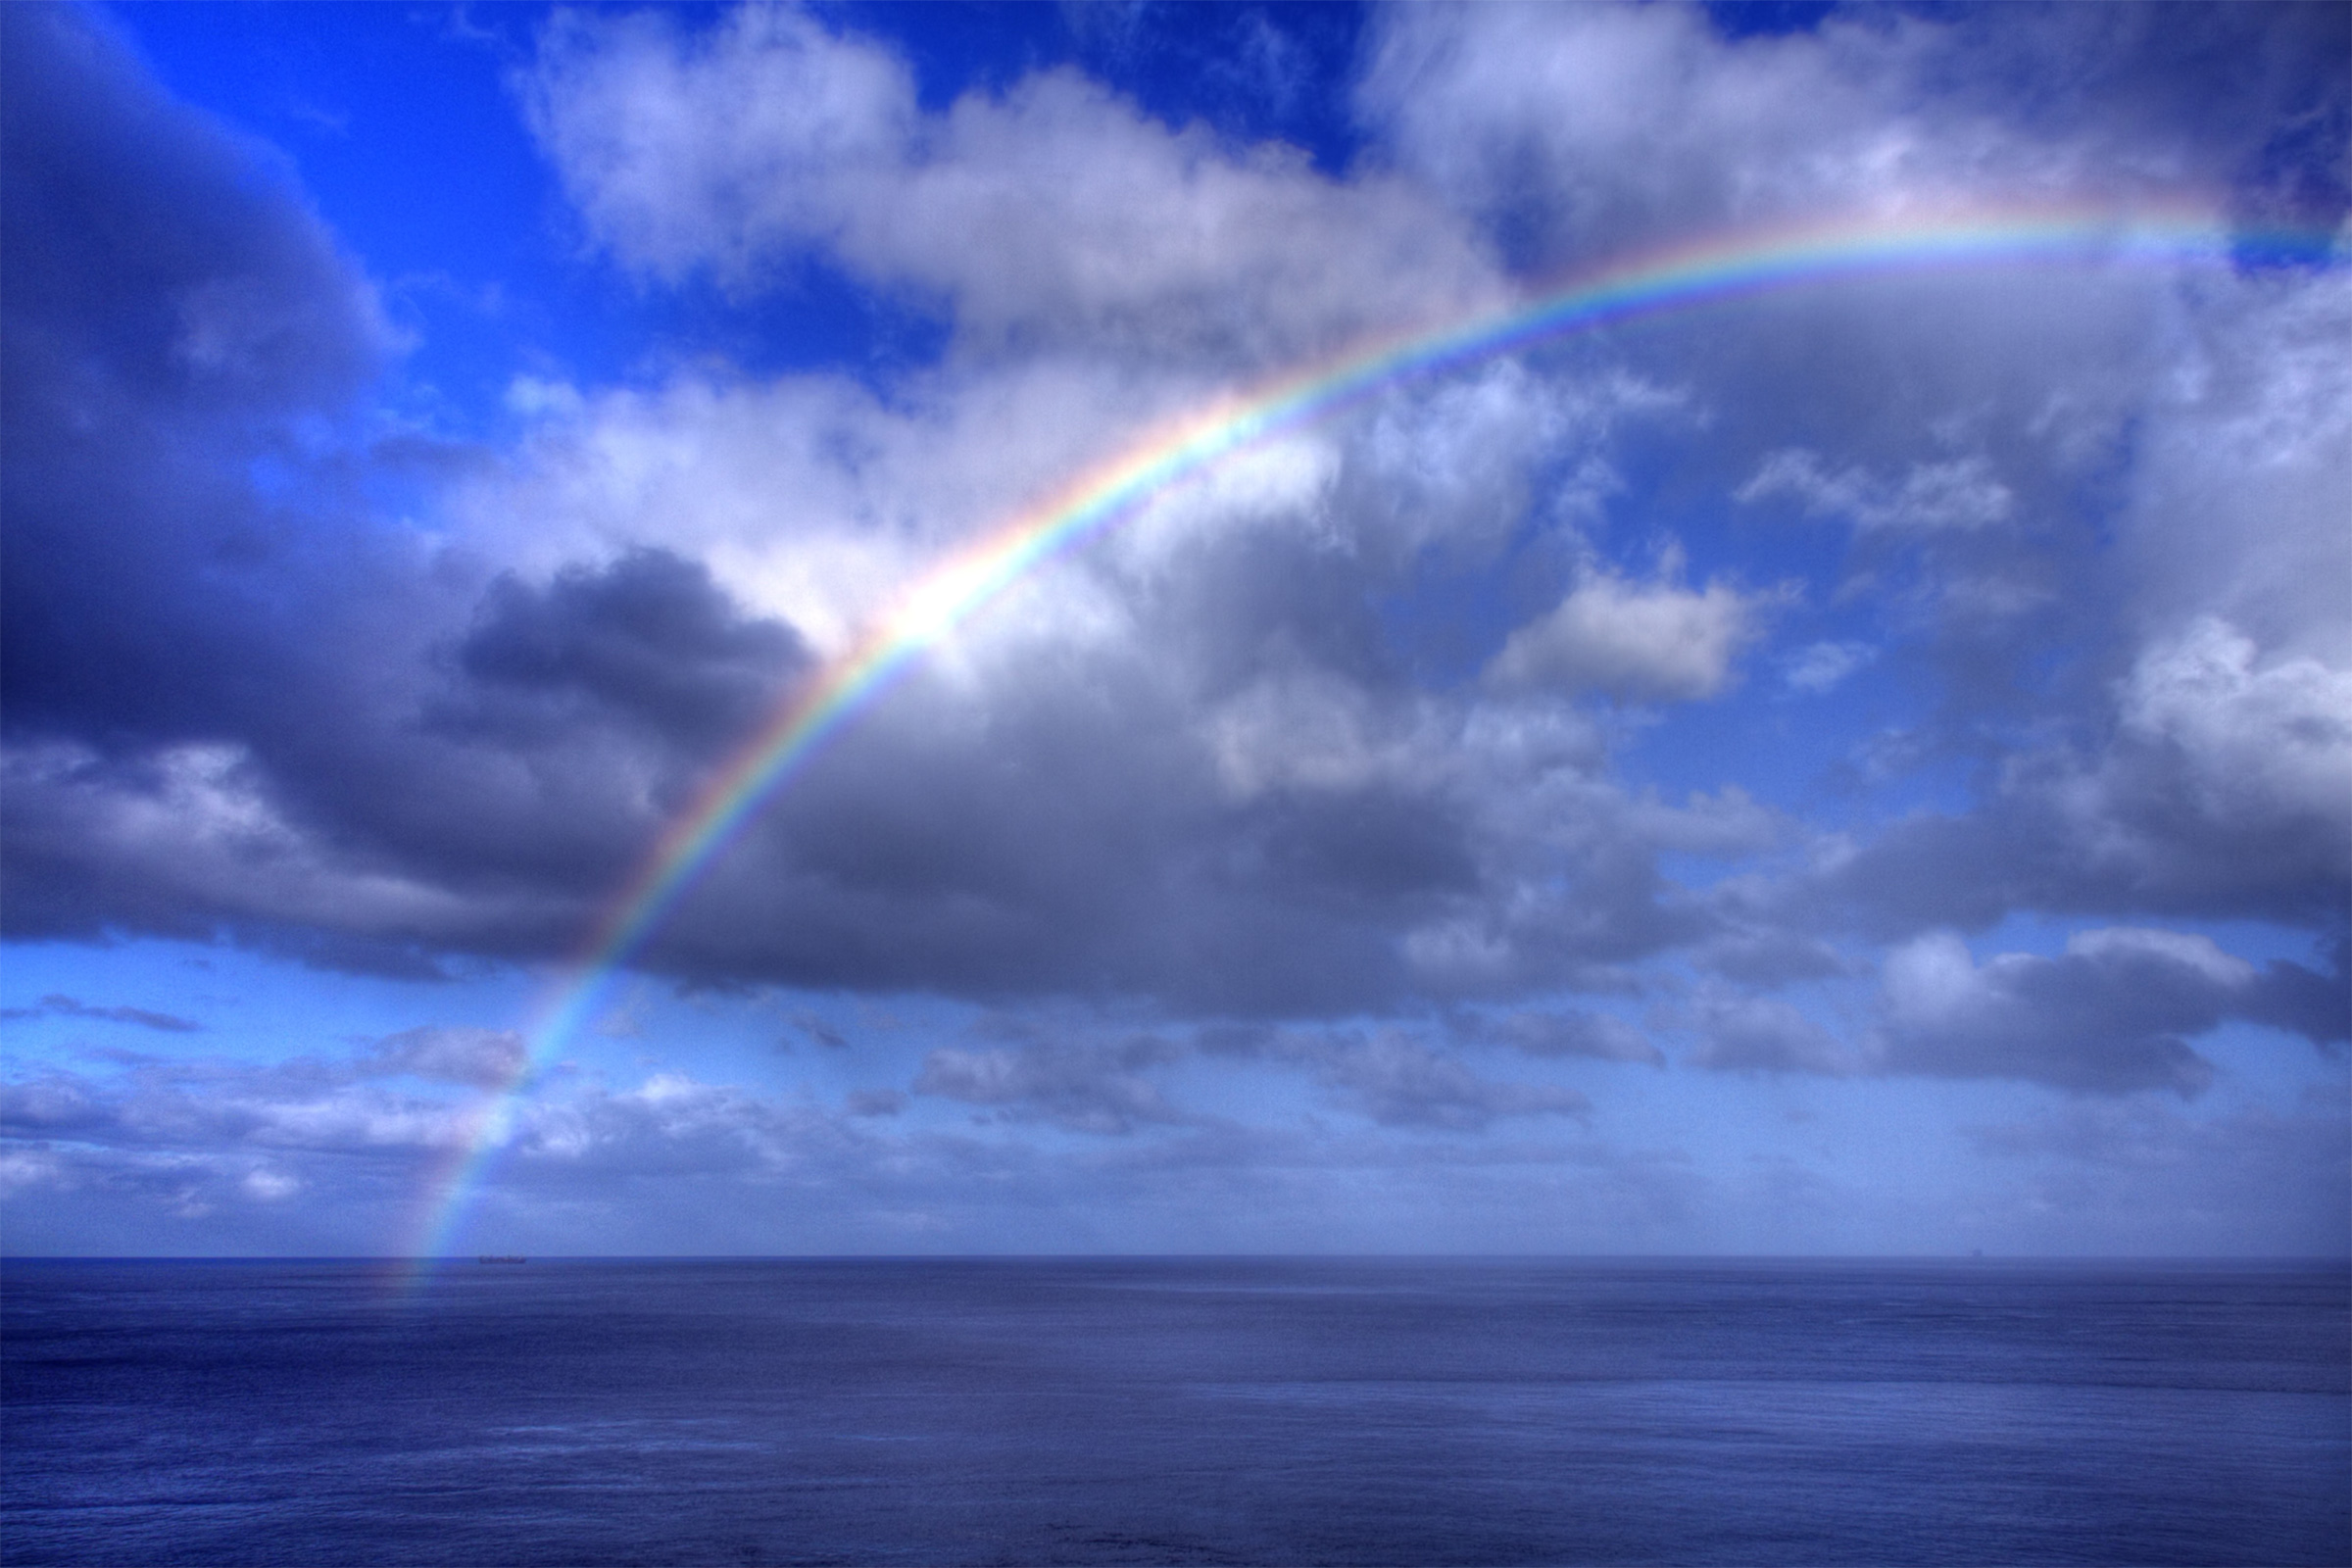 Clouds with Rainbow, Above, Sunny, Puffy, Rays, HQ Photo